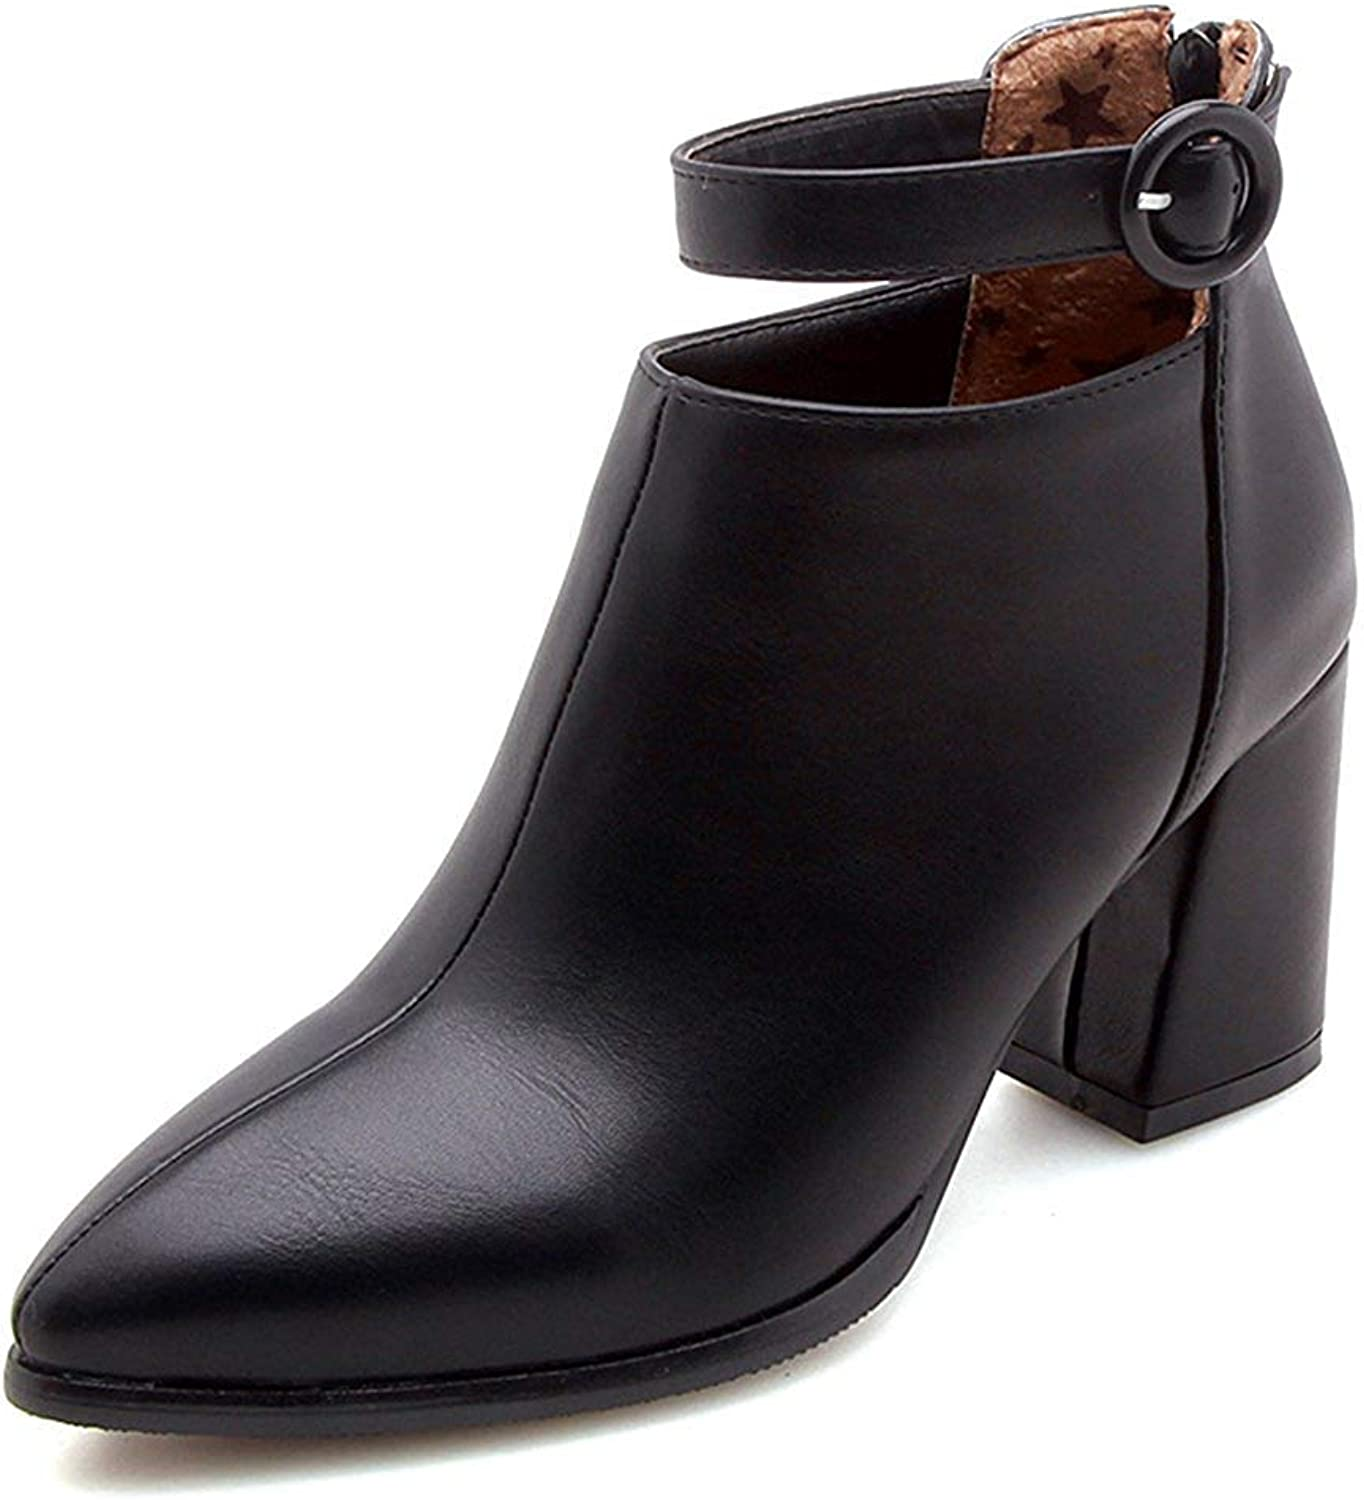 Unm Women's Dressy Short Boots with Ankle Strap - Buckled Zip up Pointy Toe - Chunky High Heel Ankle Booties